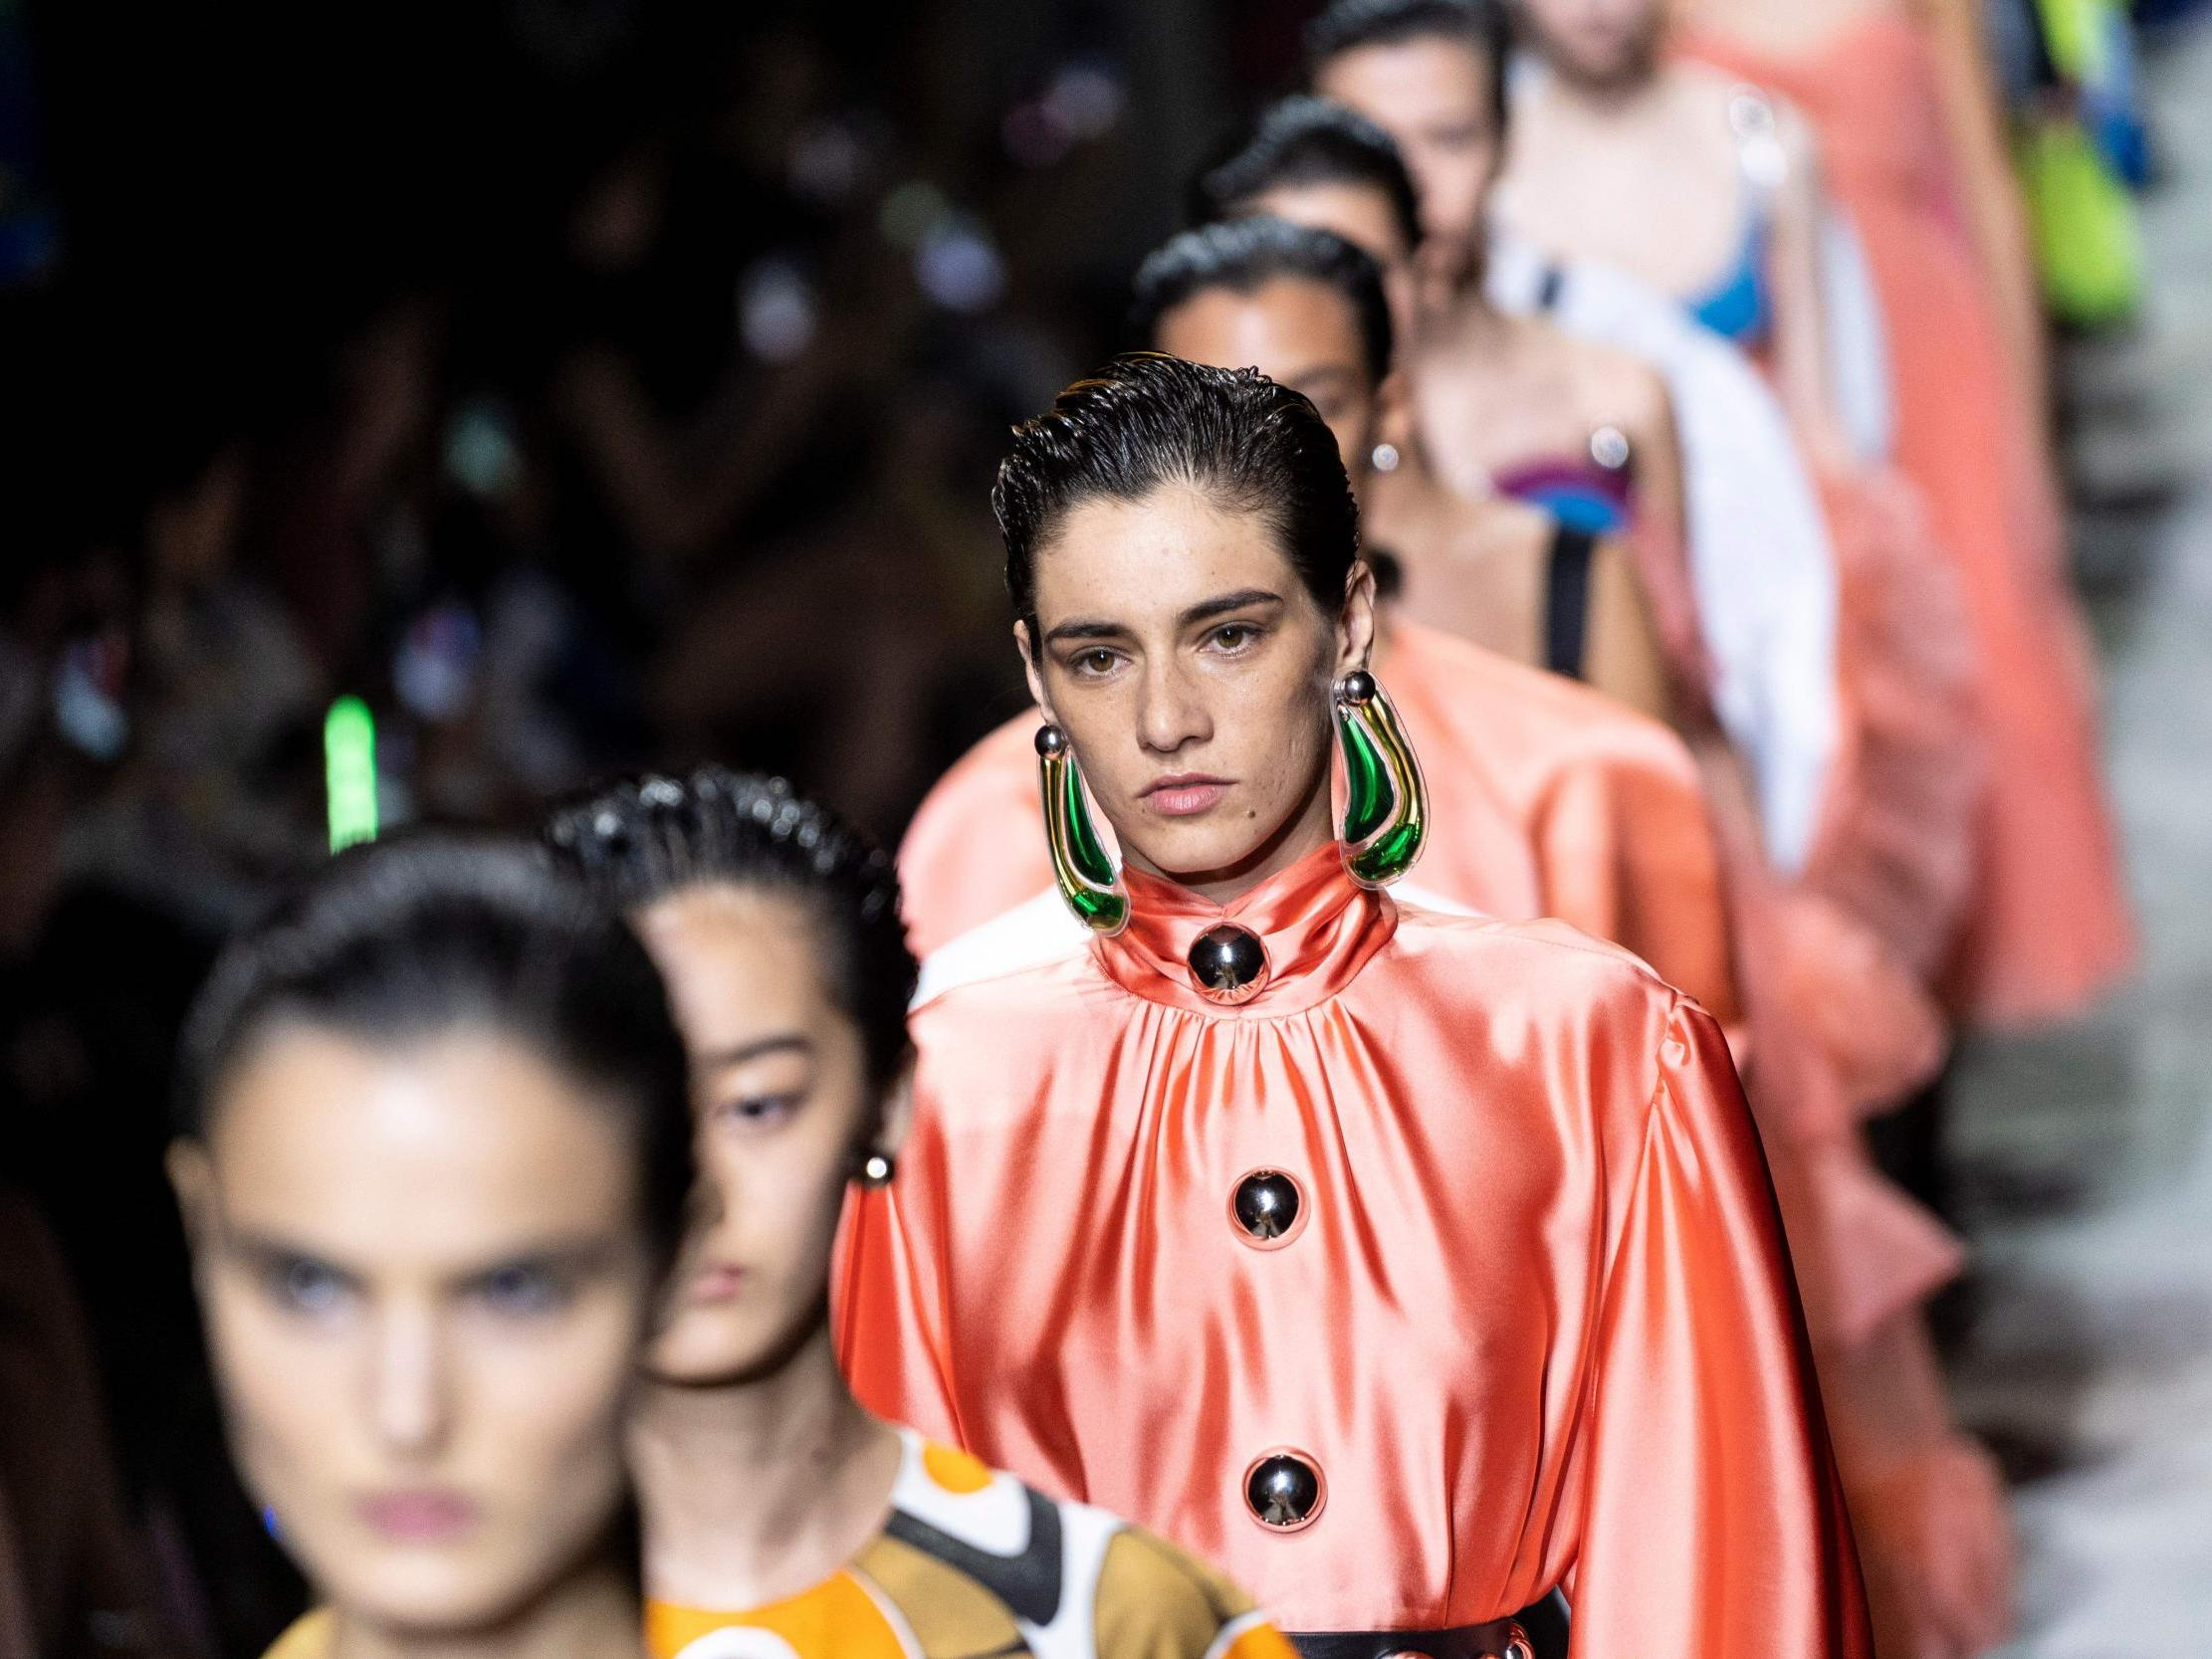 London Fashion Week SS20: Everything we learned from high-octane trends to troubles ahead